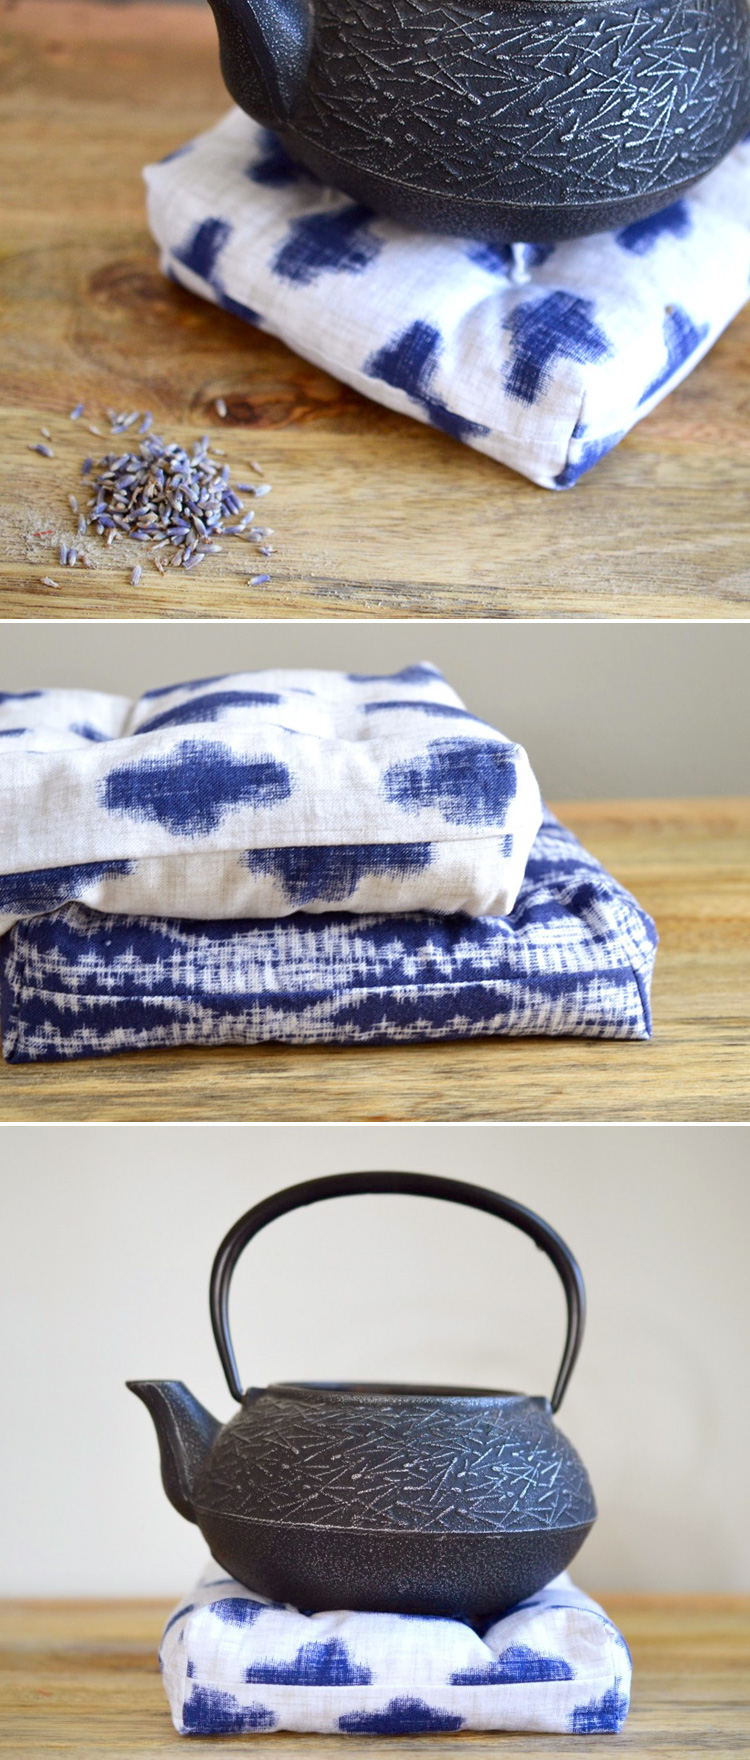 Sew this awesome tea trivet!